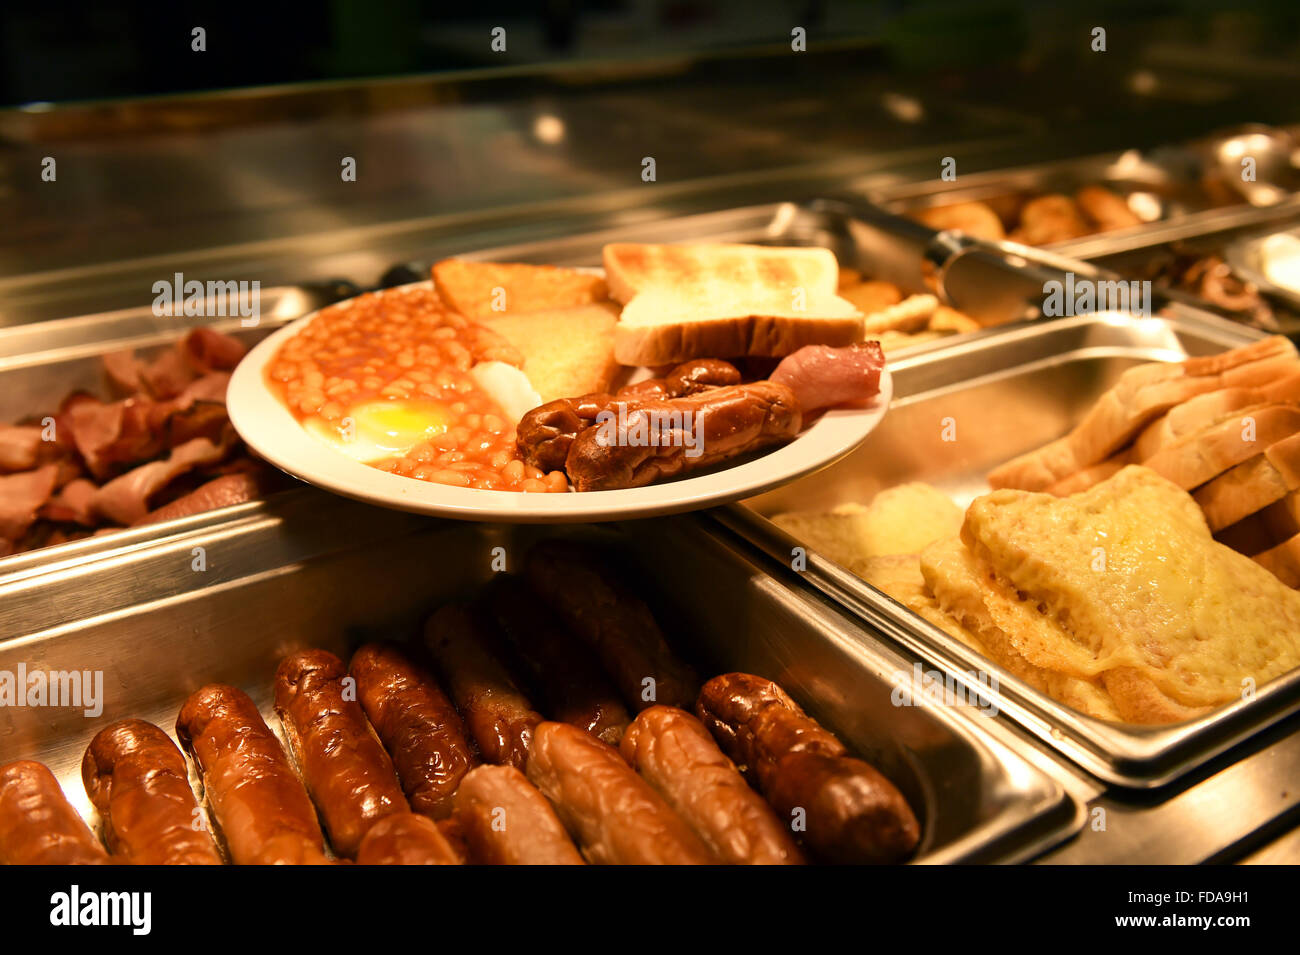 Breakfast is served at a staff canteen in a supermarket UK - Stock Image